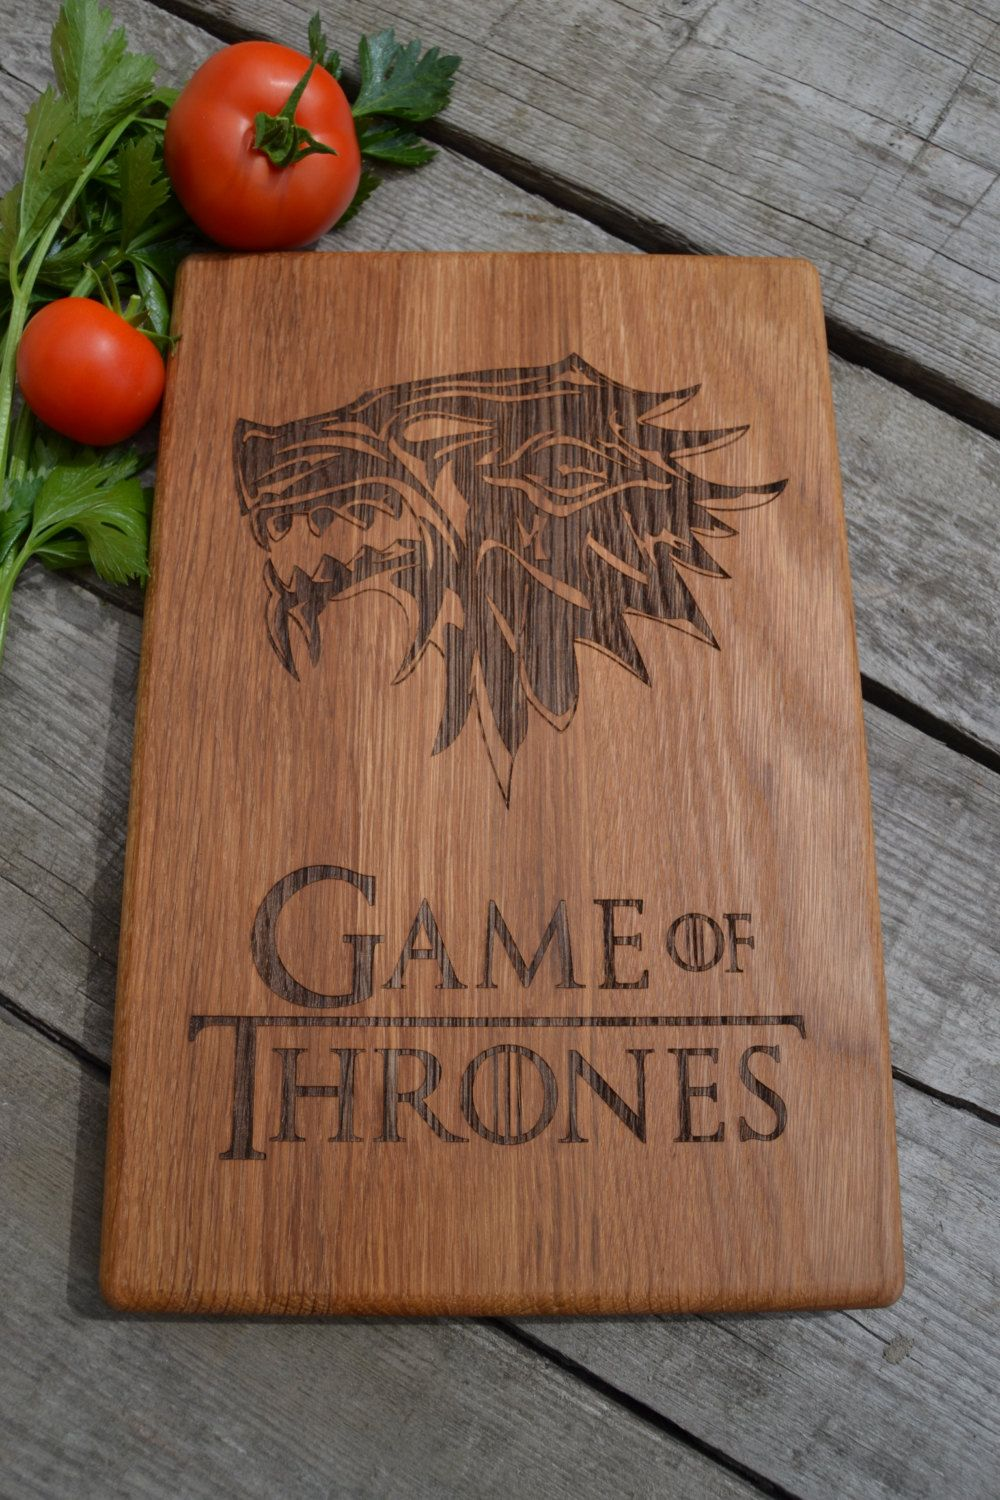 Attractive Dinner Is Coming Cutting Board Game Of Thrones Kitchen Decor Wooden Cutting  Board Cookware Git For